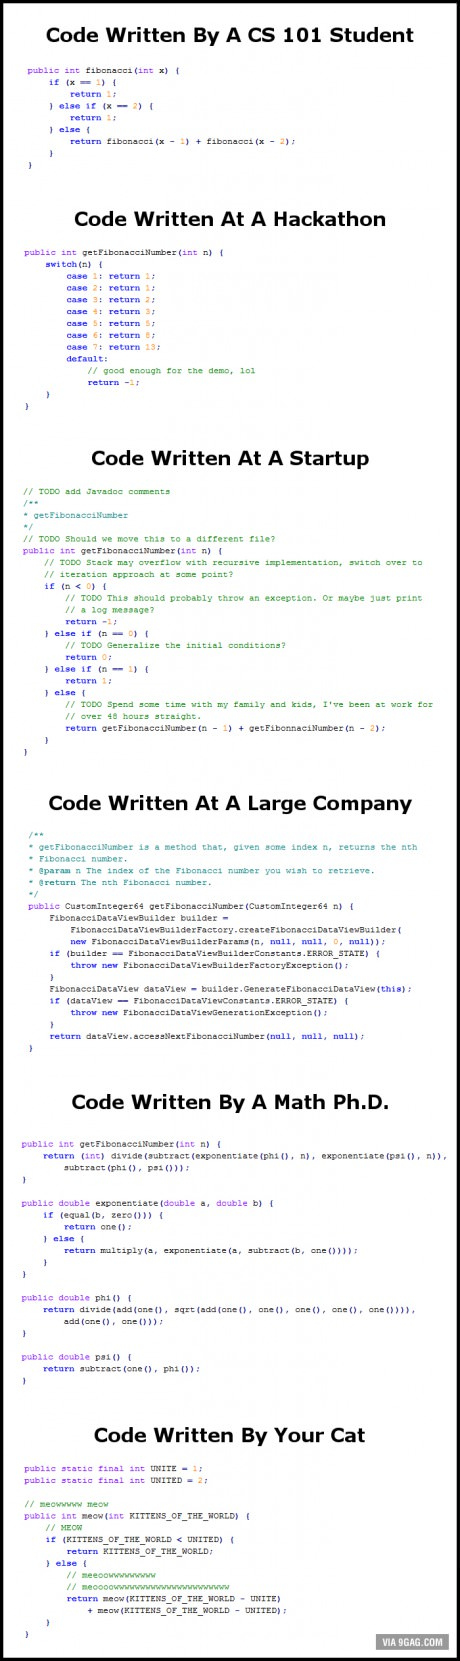 Coding through the stages